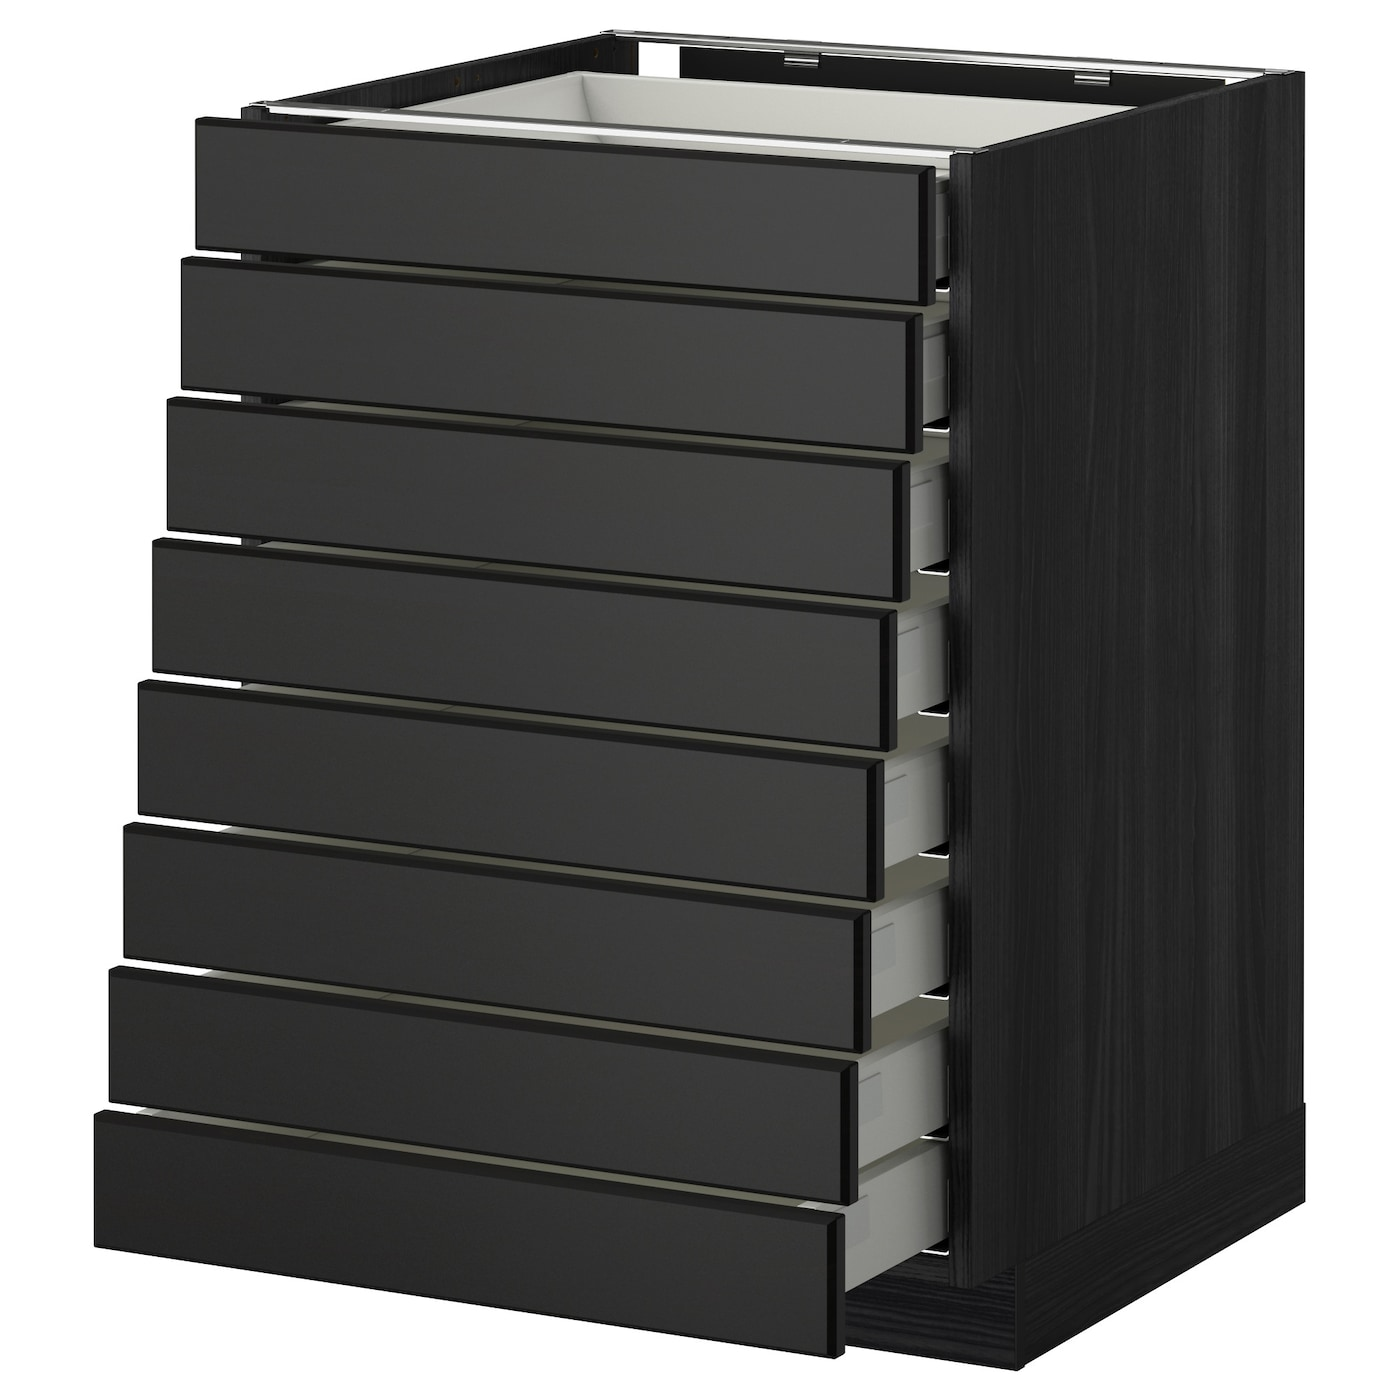 metod maximera base cabinet 8 fronts 8 low drawers black laxarby black brown 60x60 cm ikea. Black Bedroom Furniture Sets. Home Design Ideas